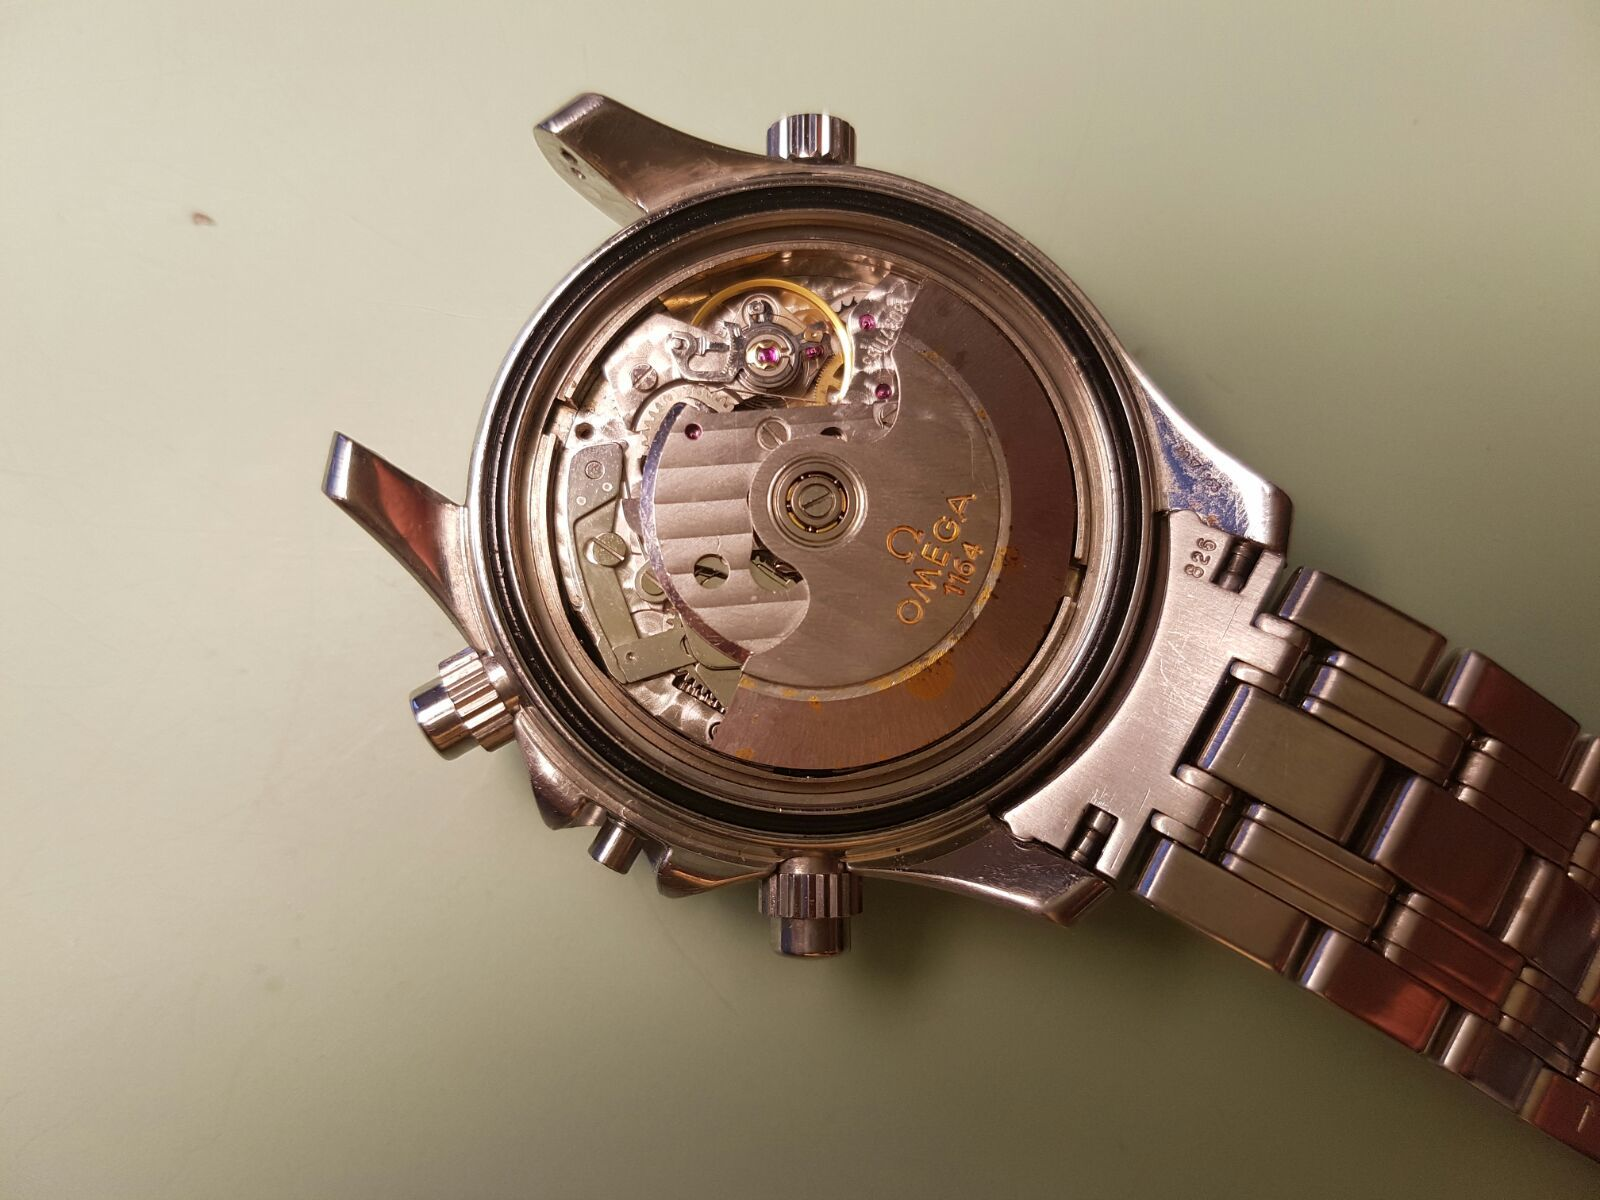 Watch repairing and servicing